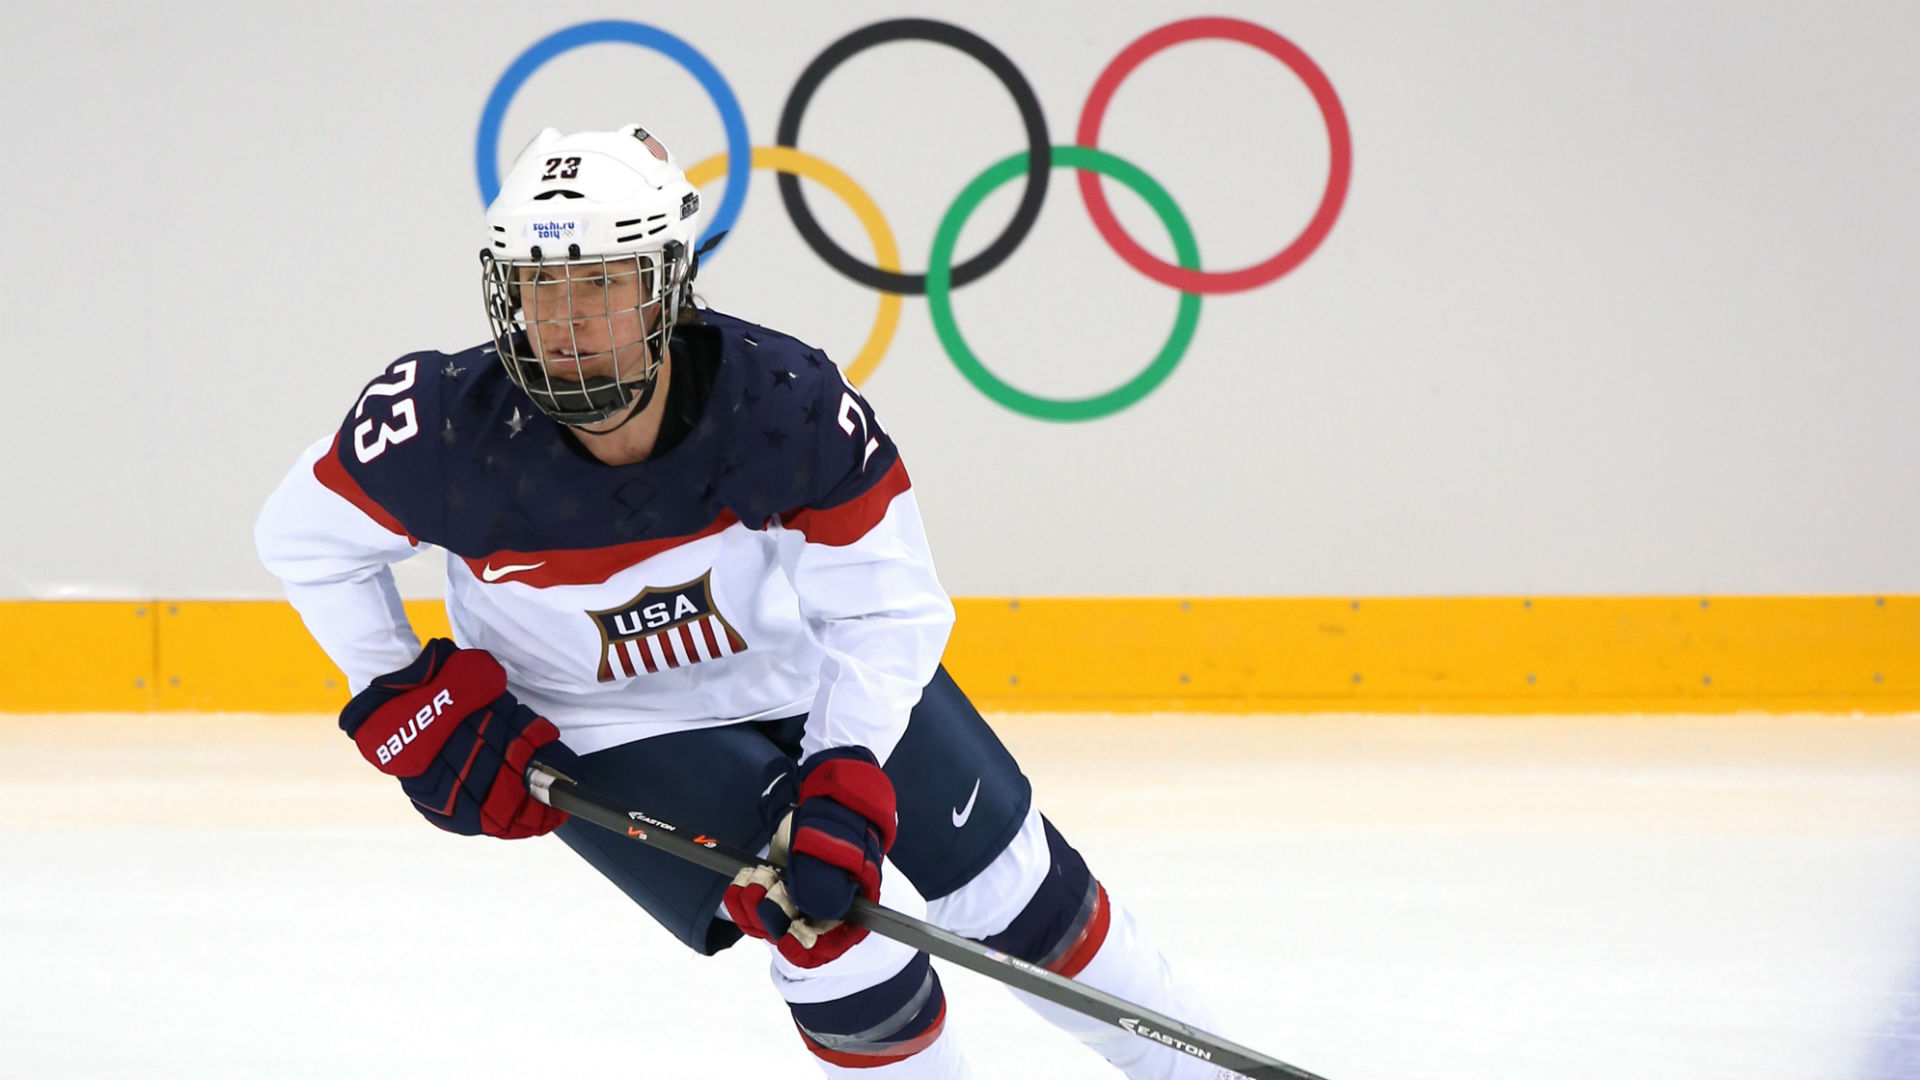 Rivalry Series 2019: Shelly Picard poised to return to USA Hockey's blueline